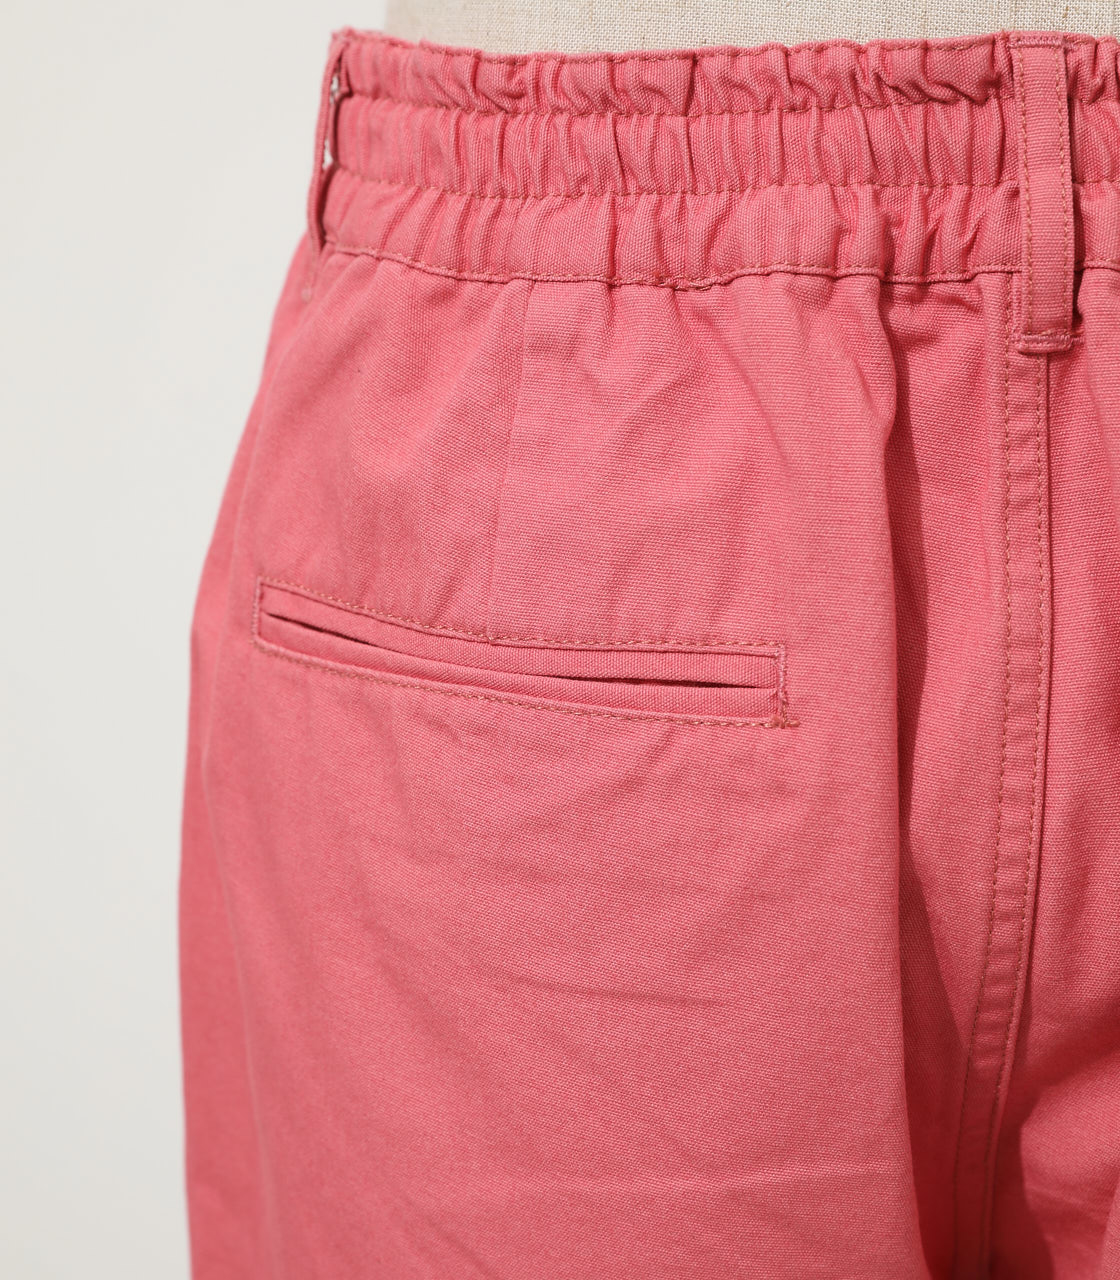 TWILL COLOR SHORTS 詳細画像 PNK 6